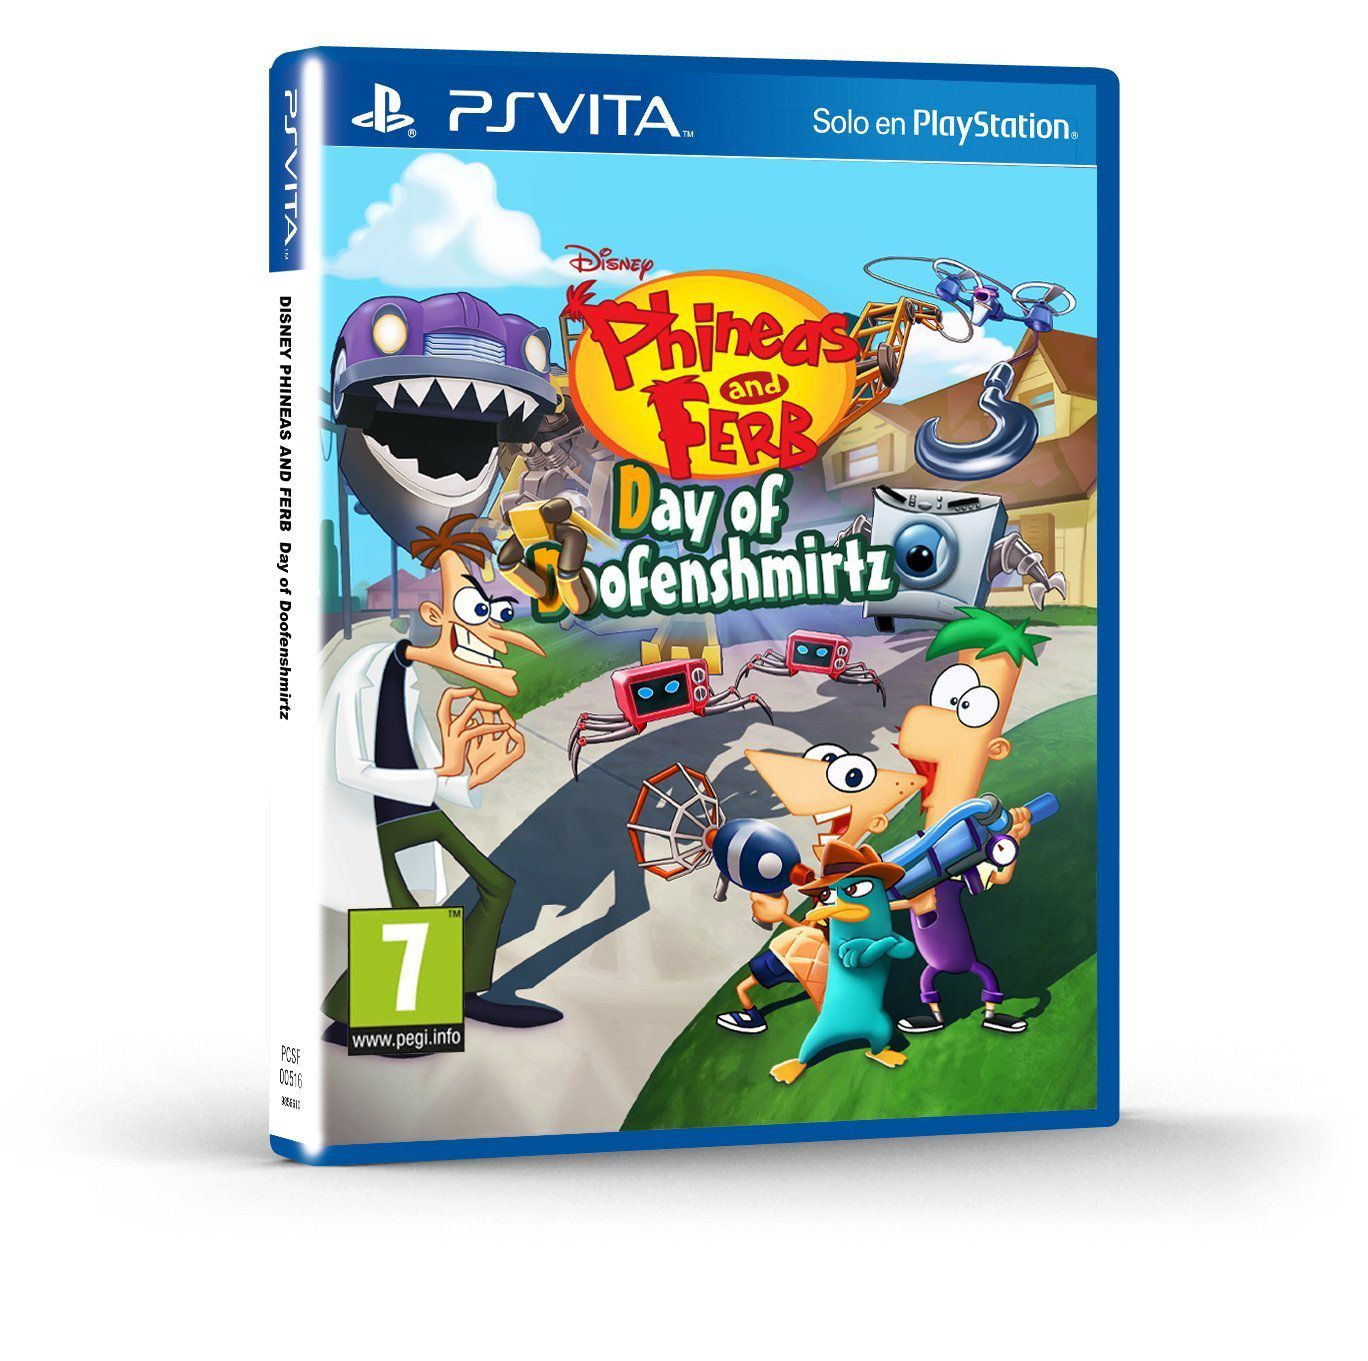 Ver Phineas Pherb Day of Doofenshmirtz Ps Vita